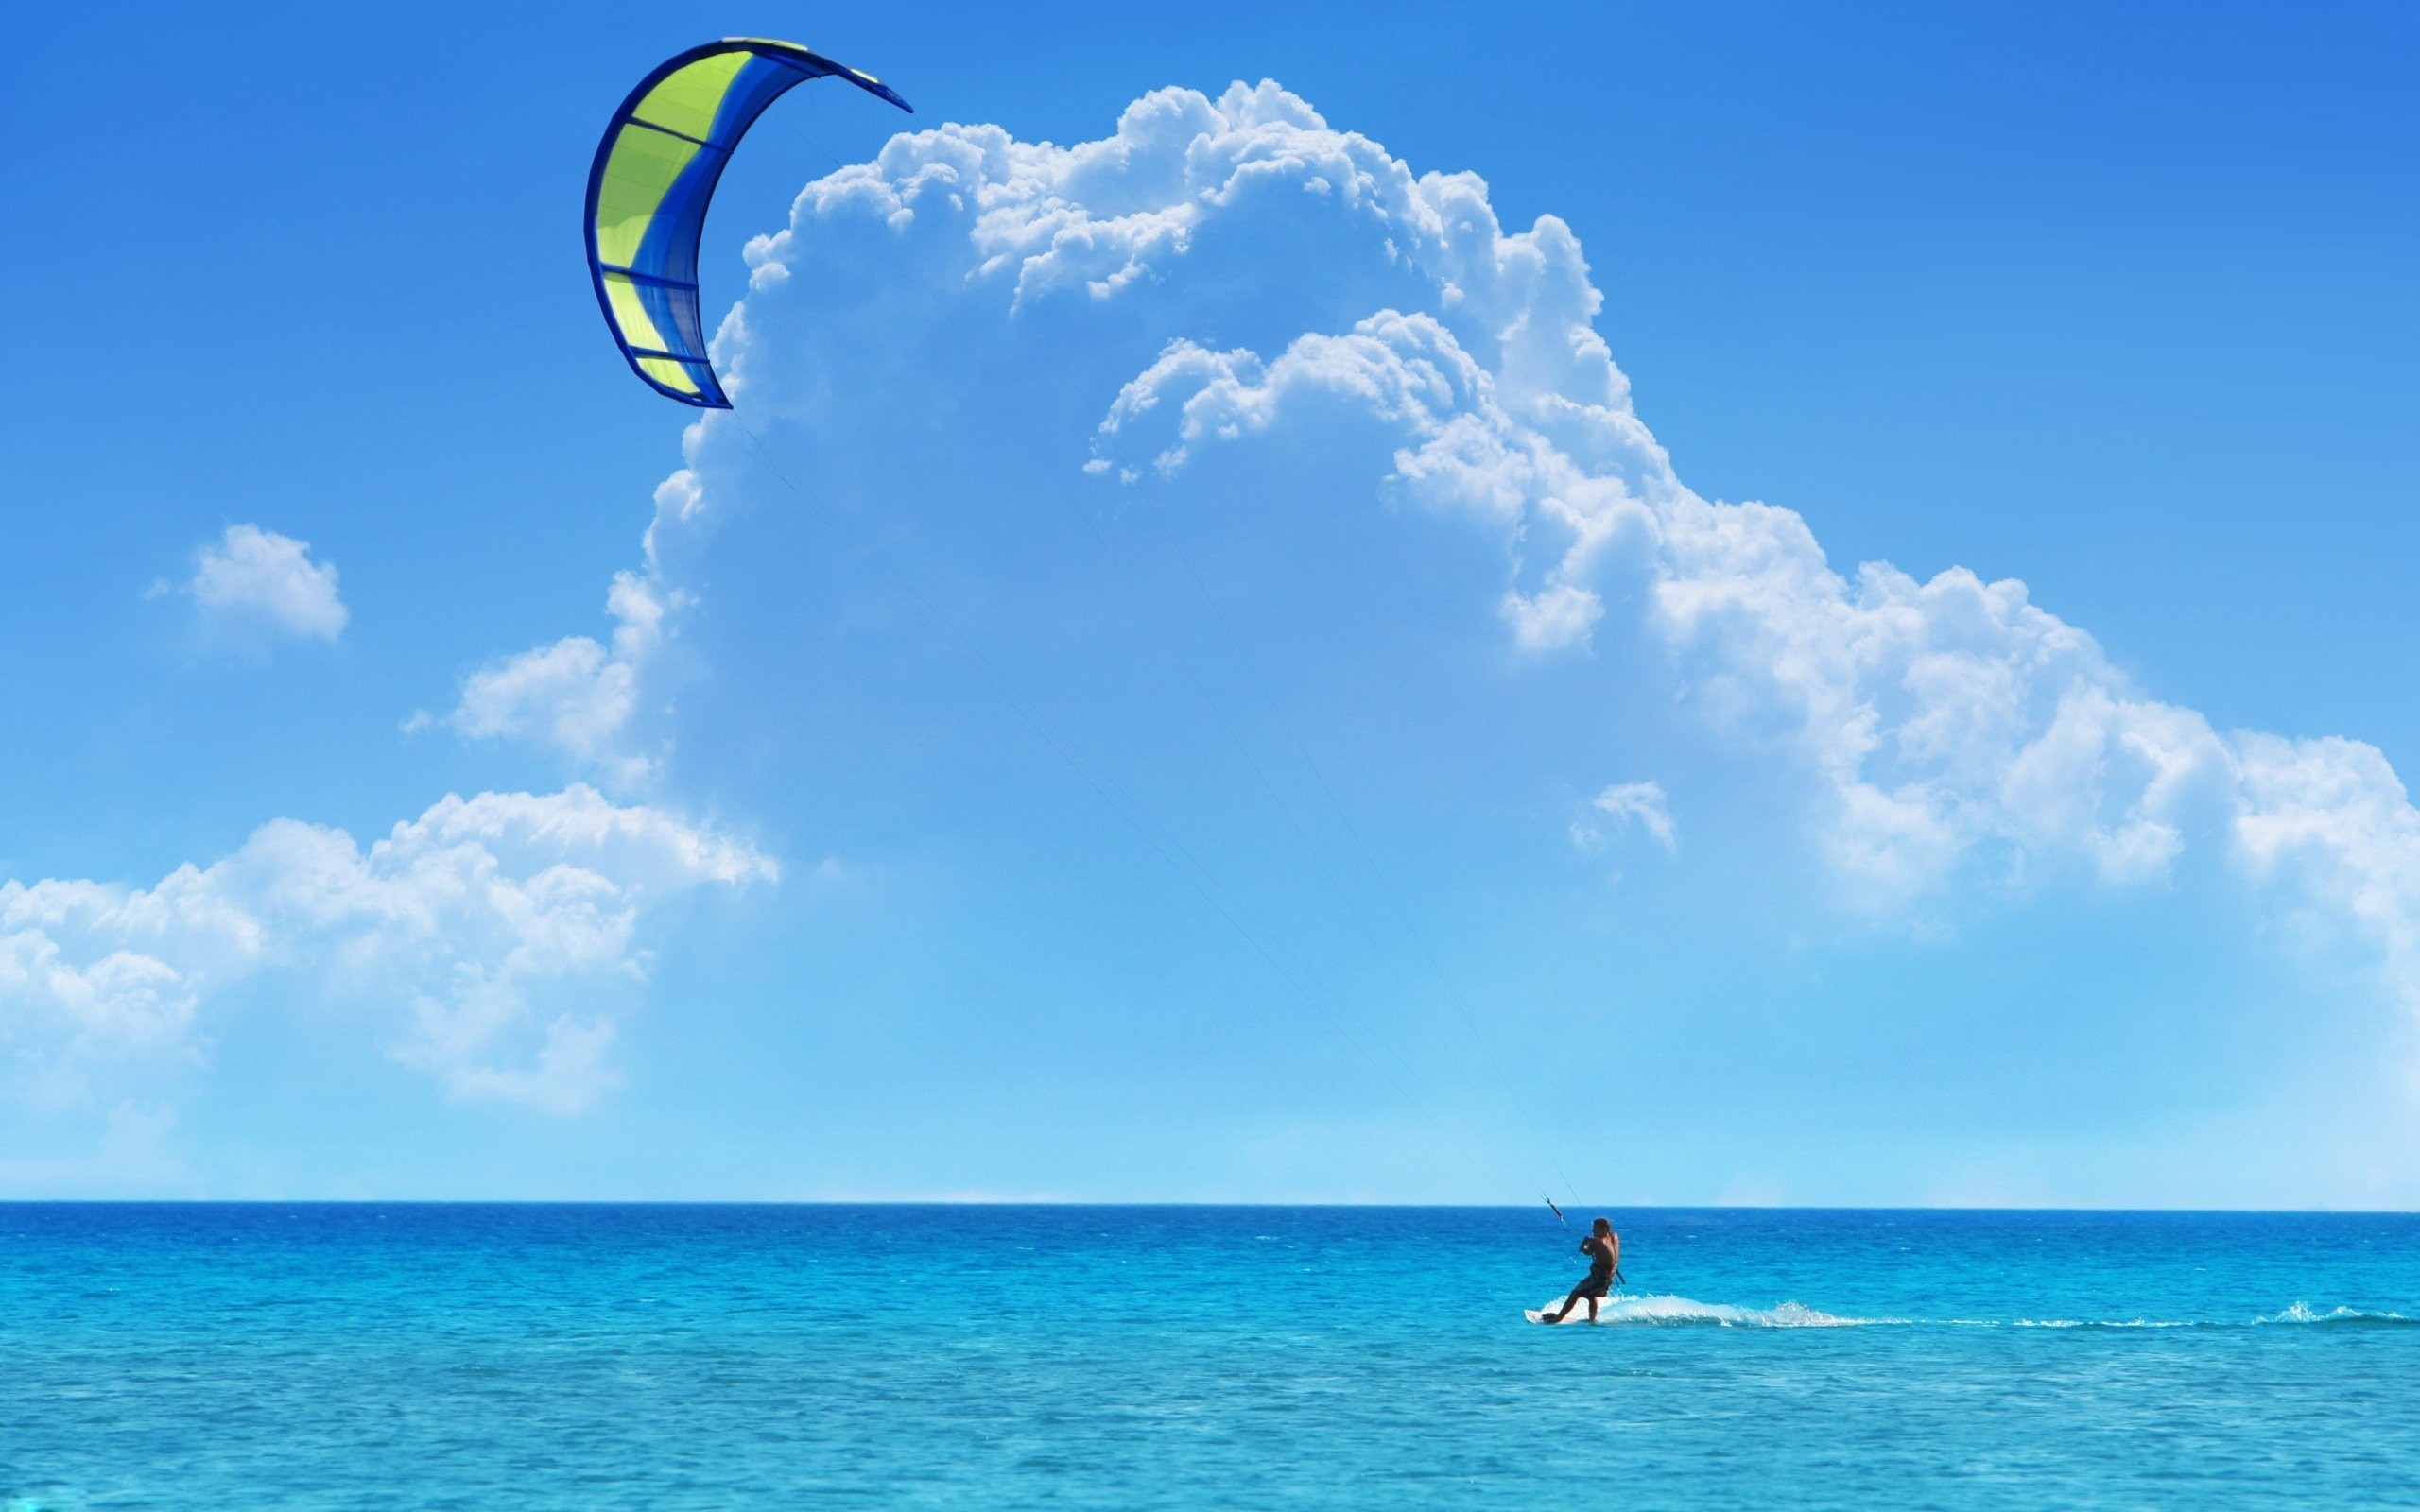 Kitesurfing wallpapers and images   wallpapers pictures photos 2560x1600